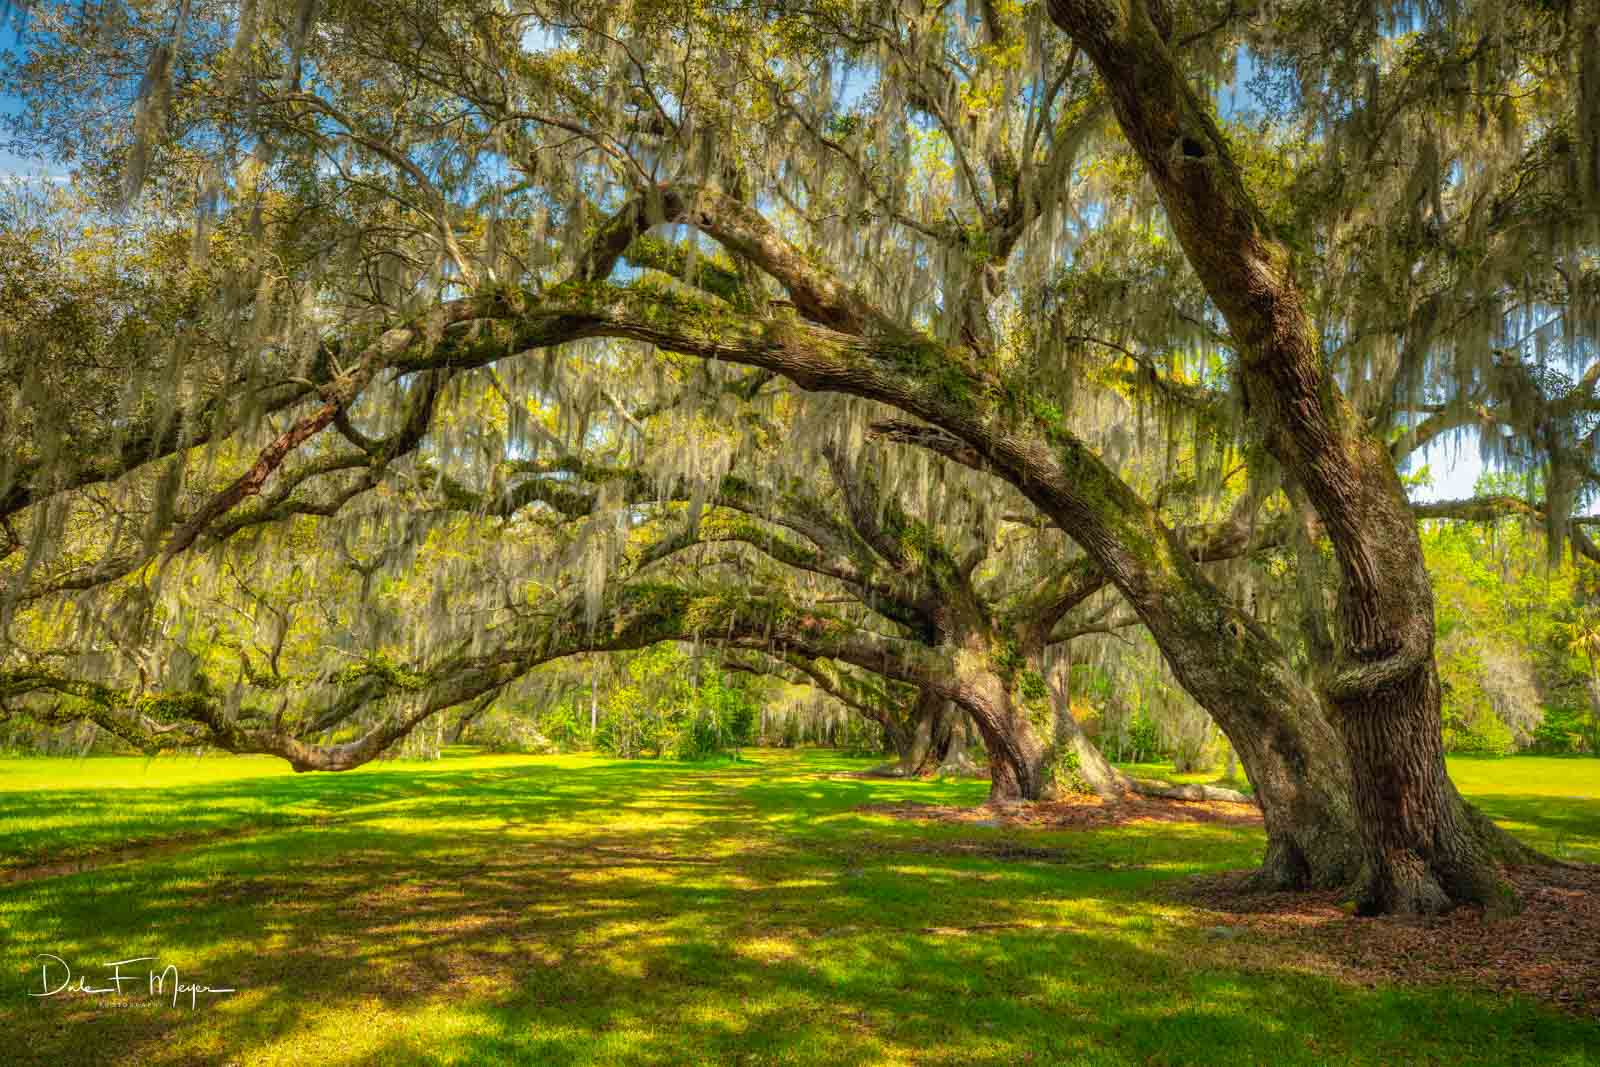 A row of very old Live Oak Trees in the low country of South Carolina near the Magnolia Gardens. I sat for a while in the shade...